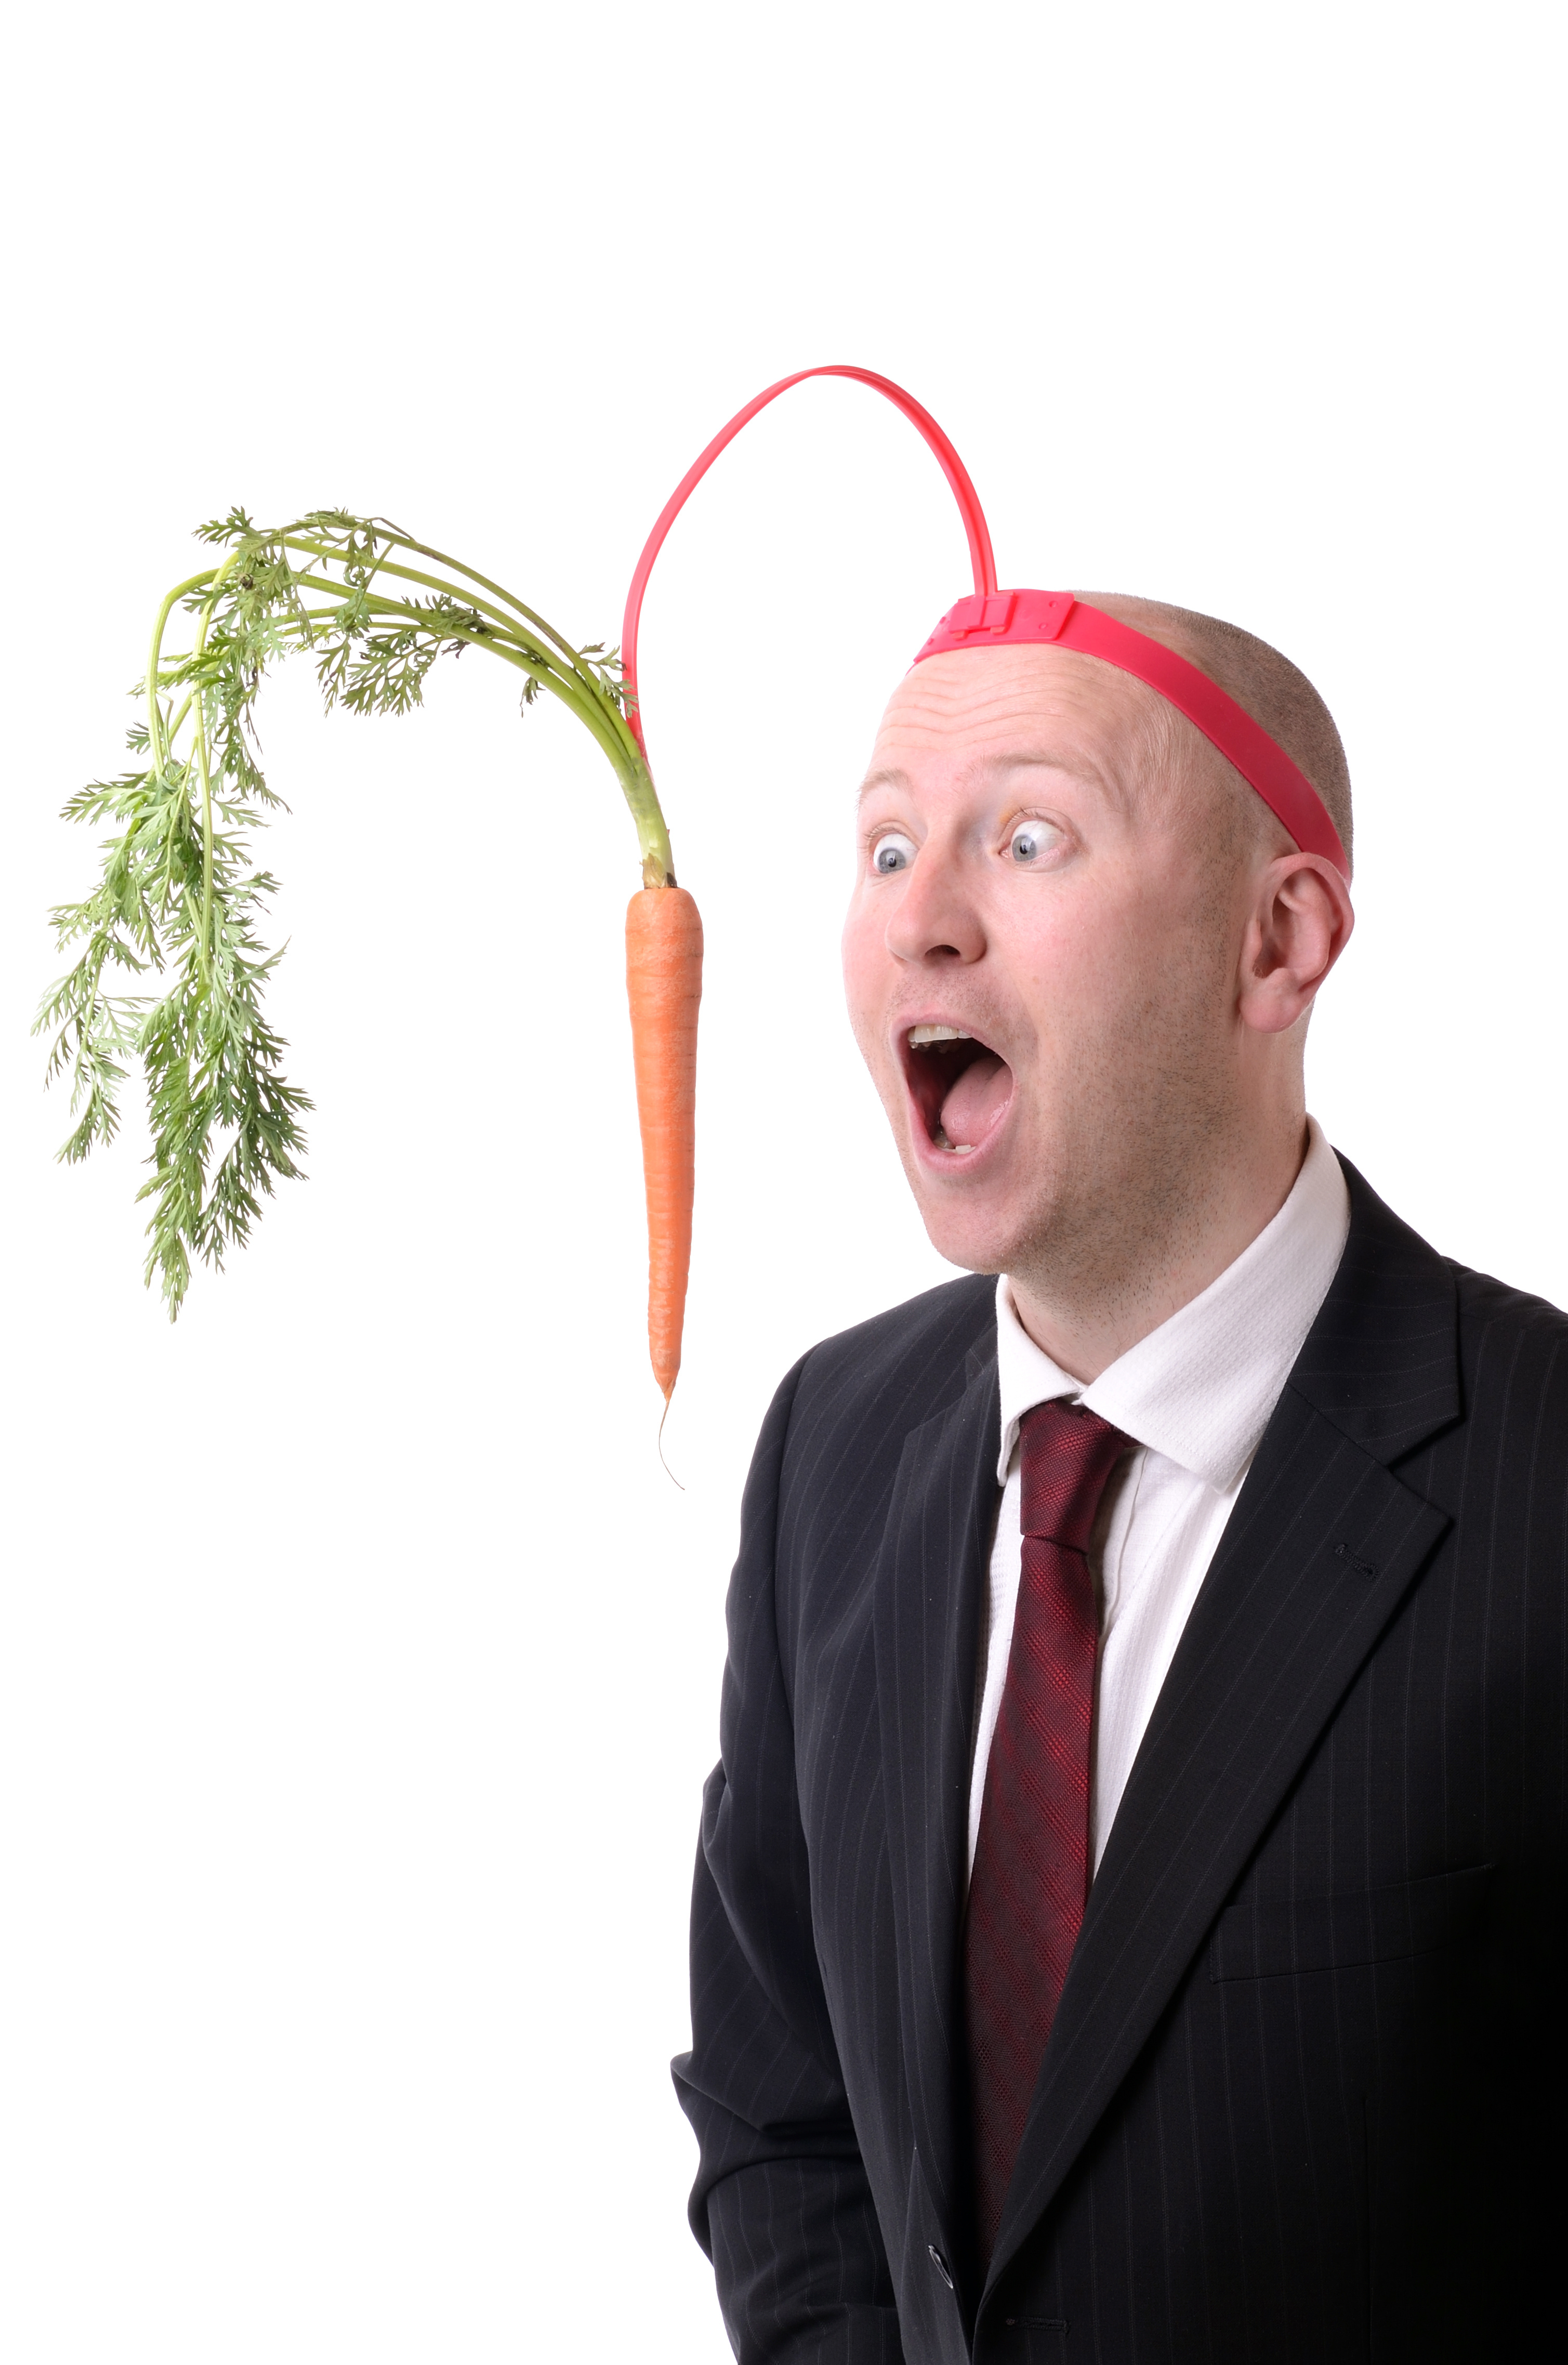 carrot-and-stick.jpg